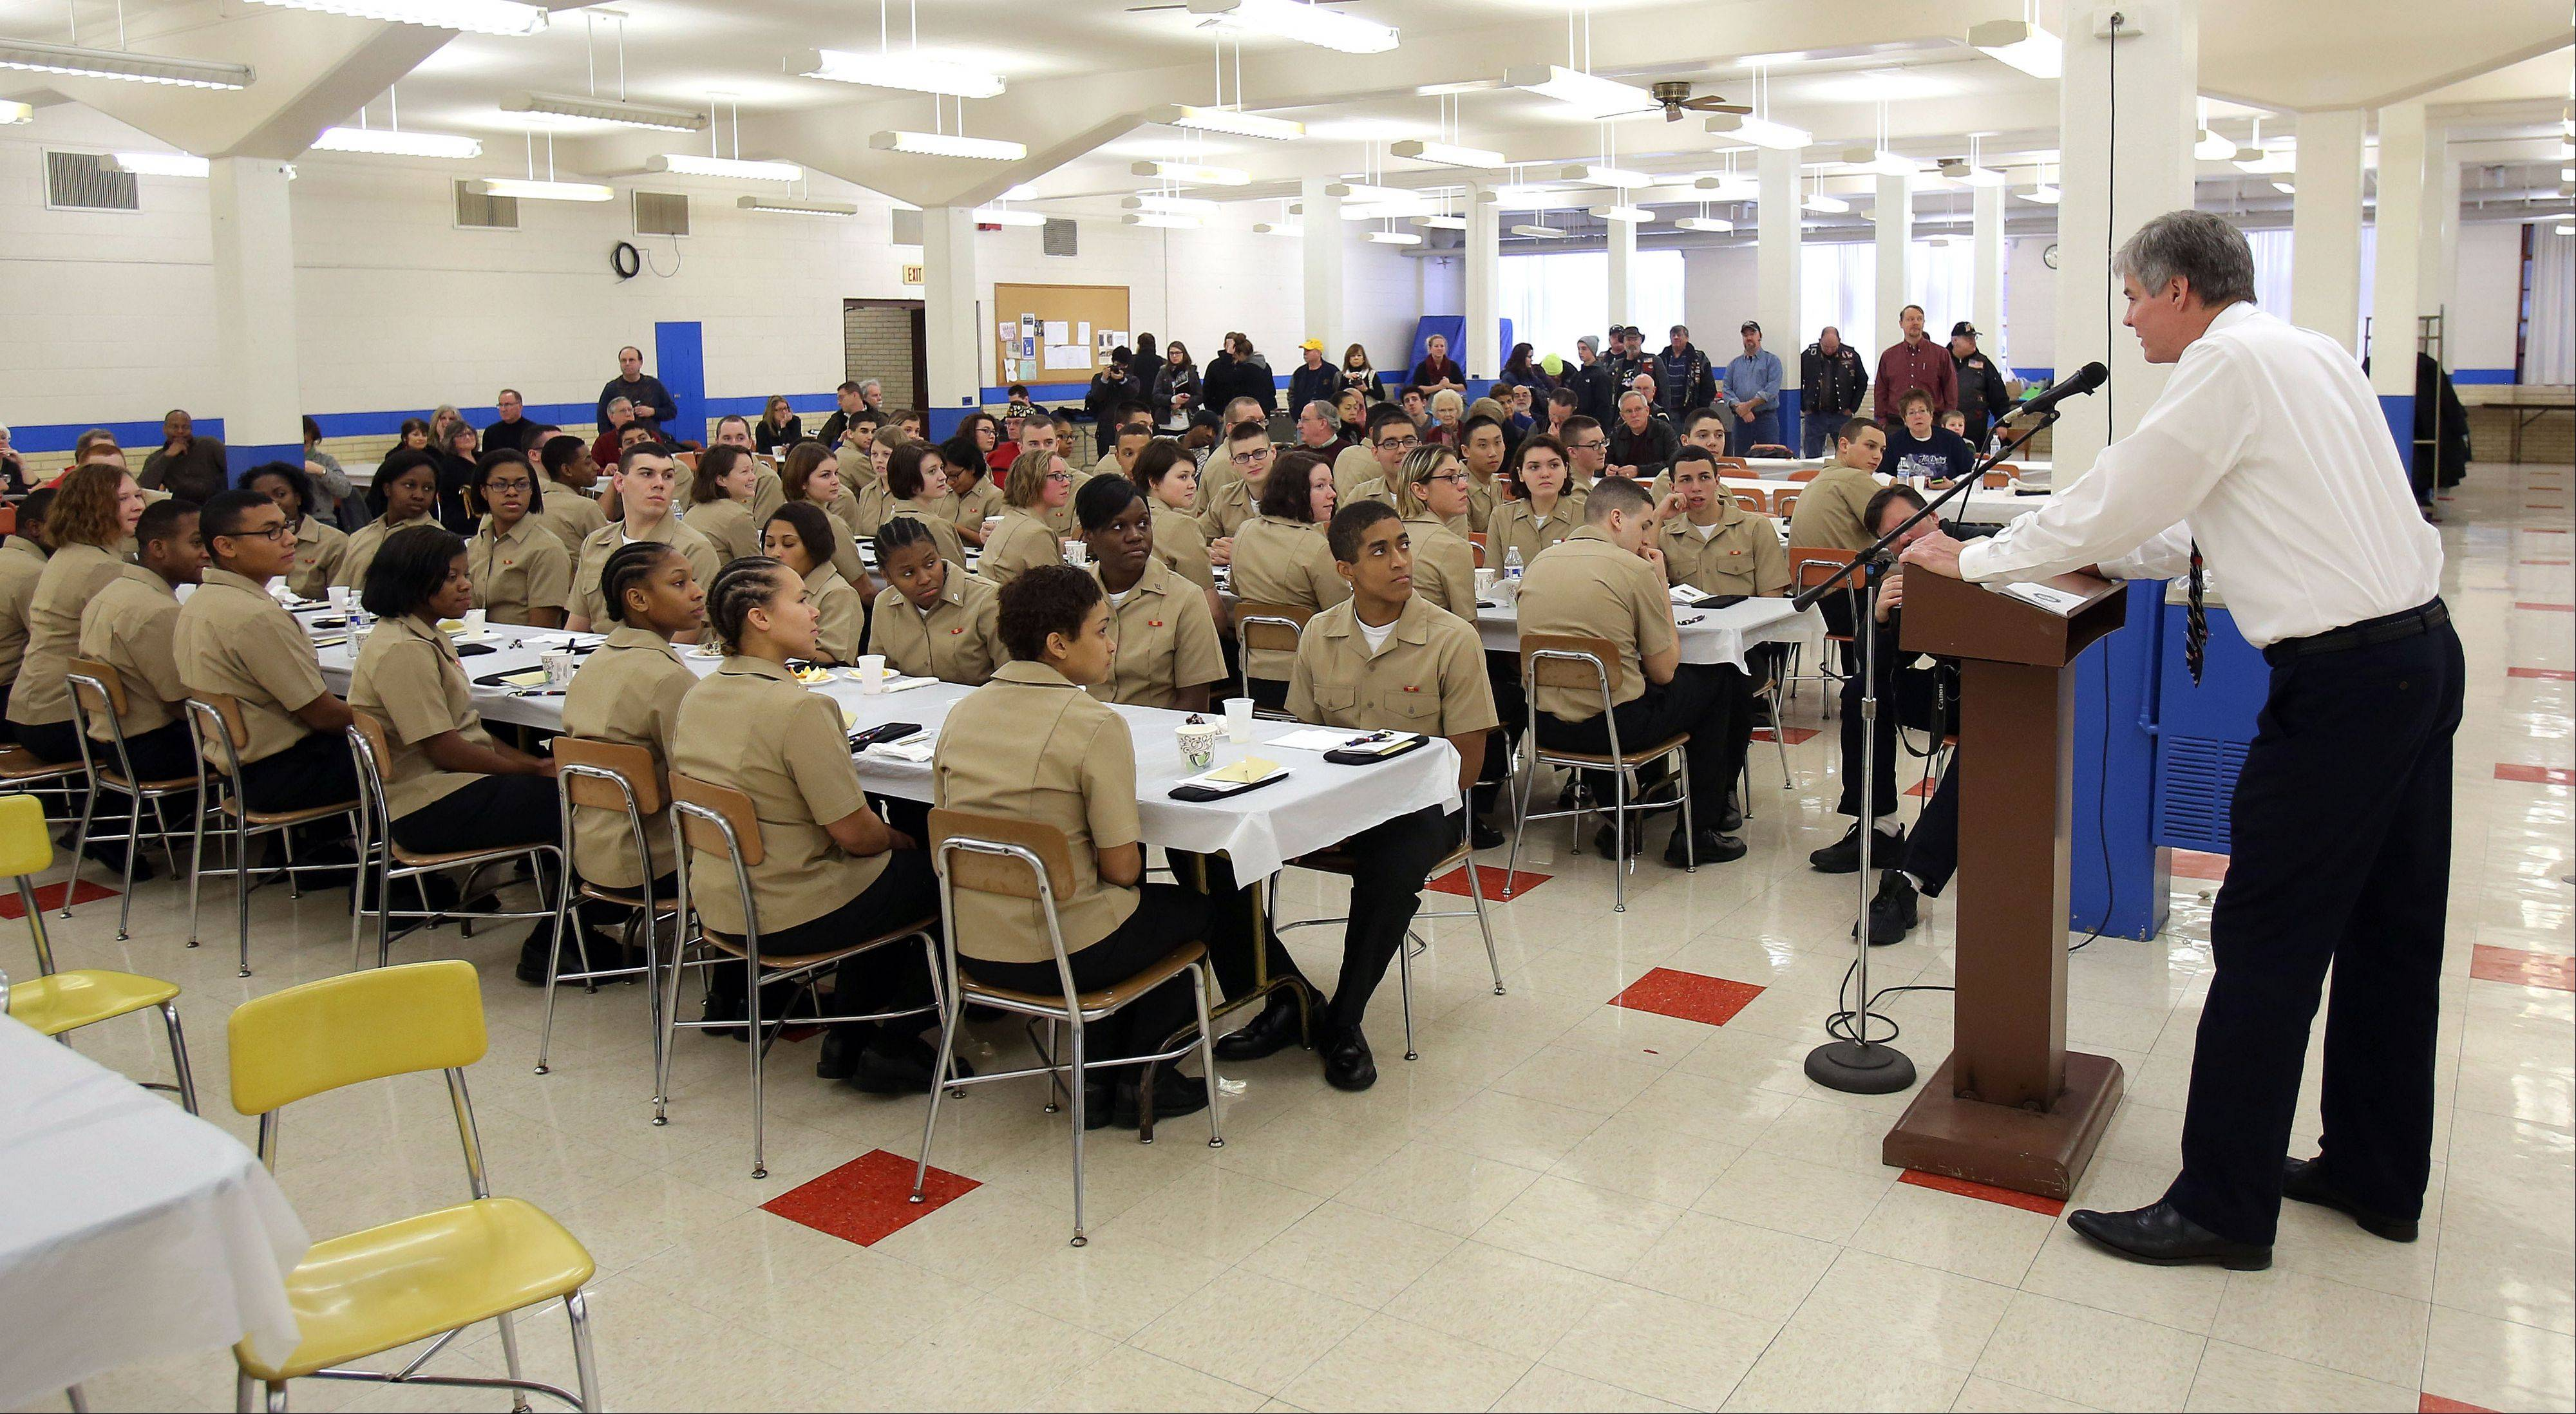 Robert Stack of Arlington Heights addresses about 50 recruits from Great Lakes Naval Base during a Christmas event at Christian Liberty Academy in Arlington Heights Wednesday morning. Stack lost his son, Marine Lance Cpl. James Bray Stack, in Afghanistan in 2010.